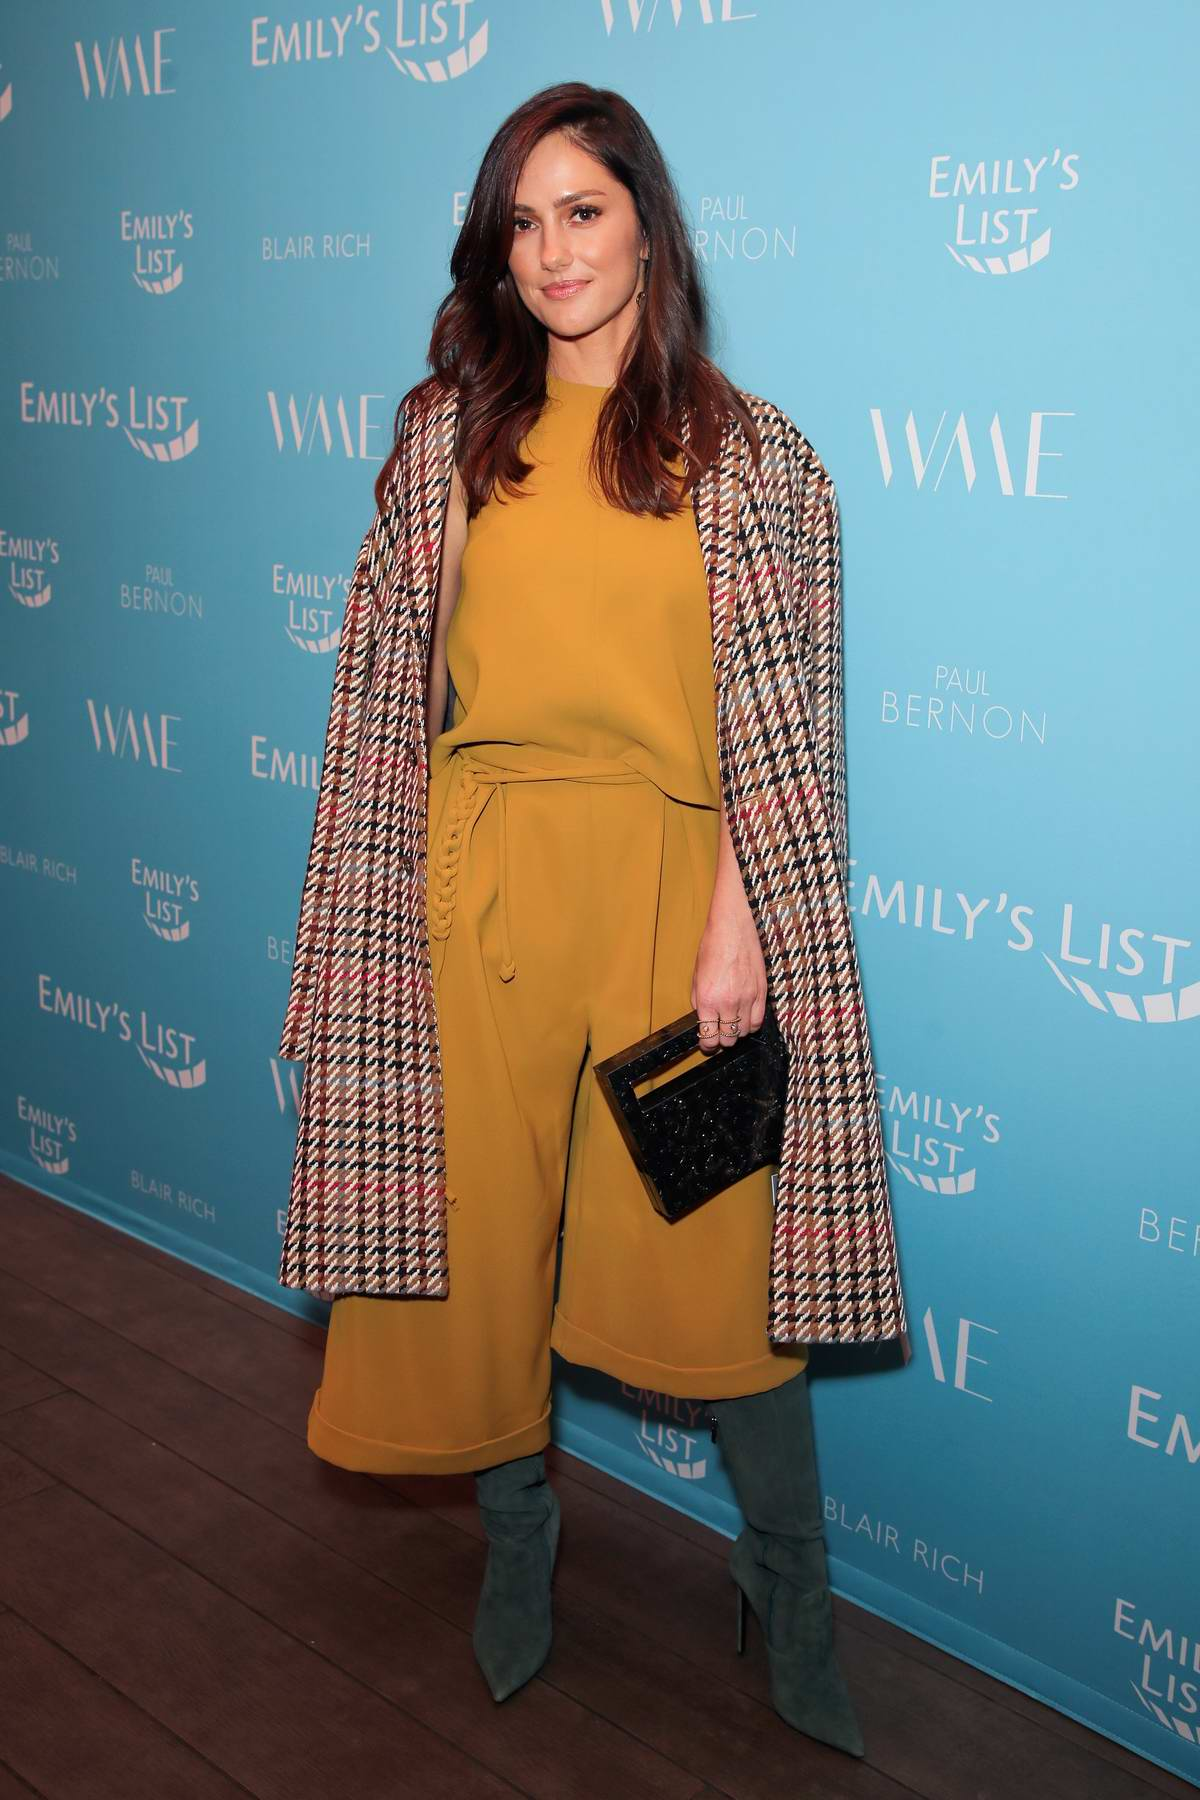 Minka Kelly attends the EMILY'S List Pre-Oscars Brunch at the Four Seasons Hotel in Los Angeles